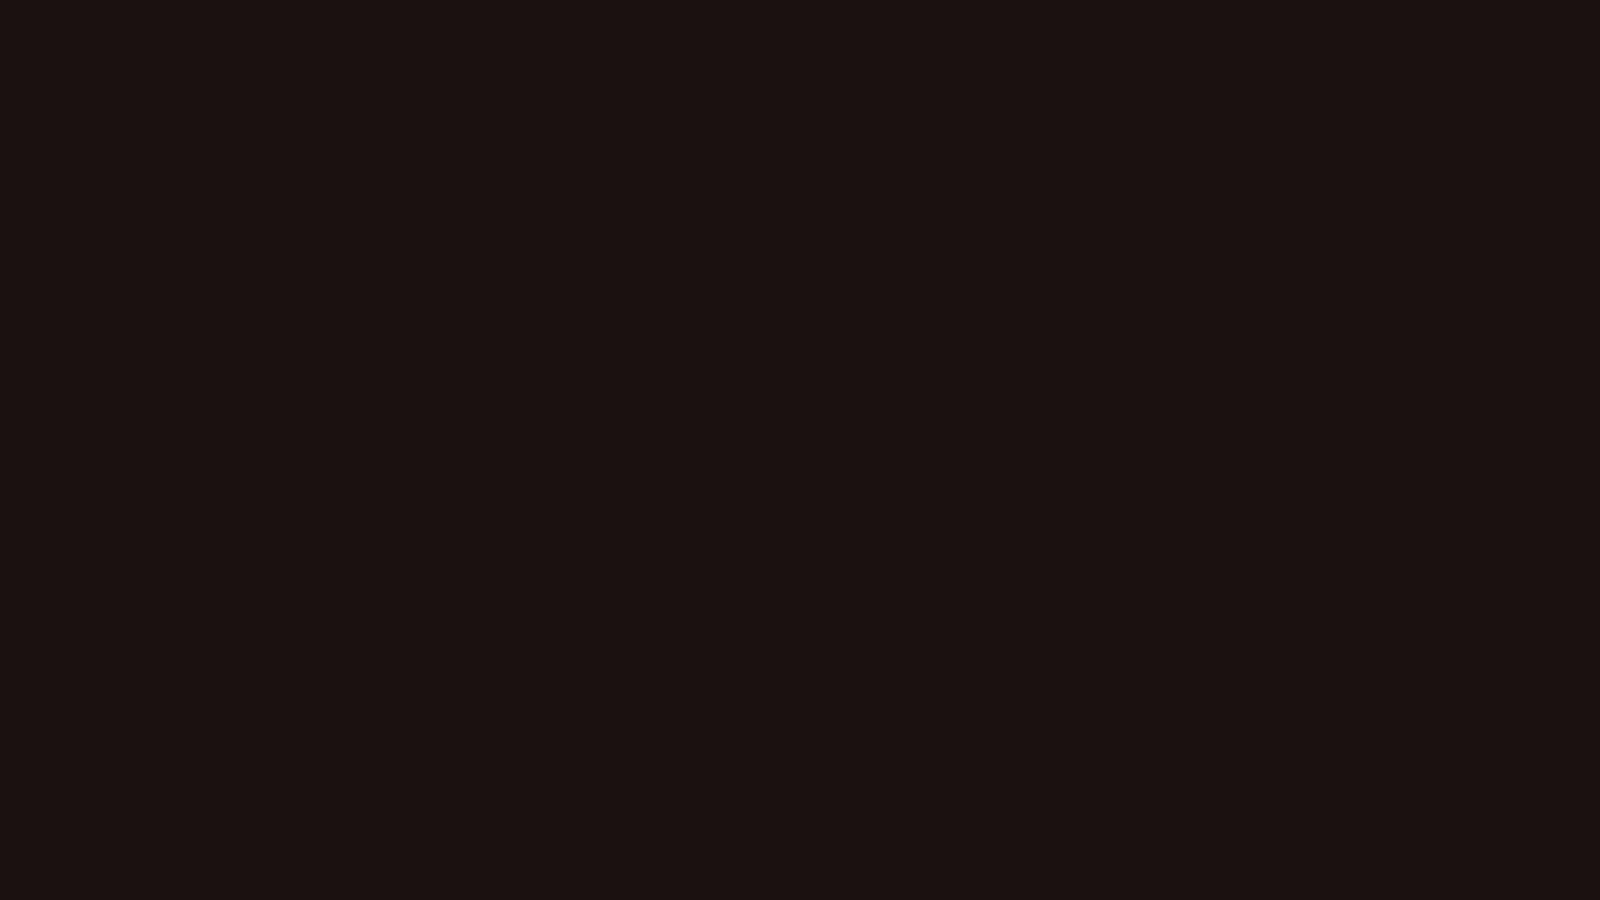 1600x900 Licorice Solid Color Background